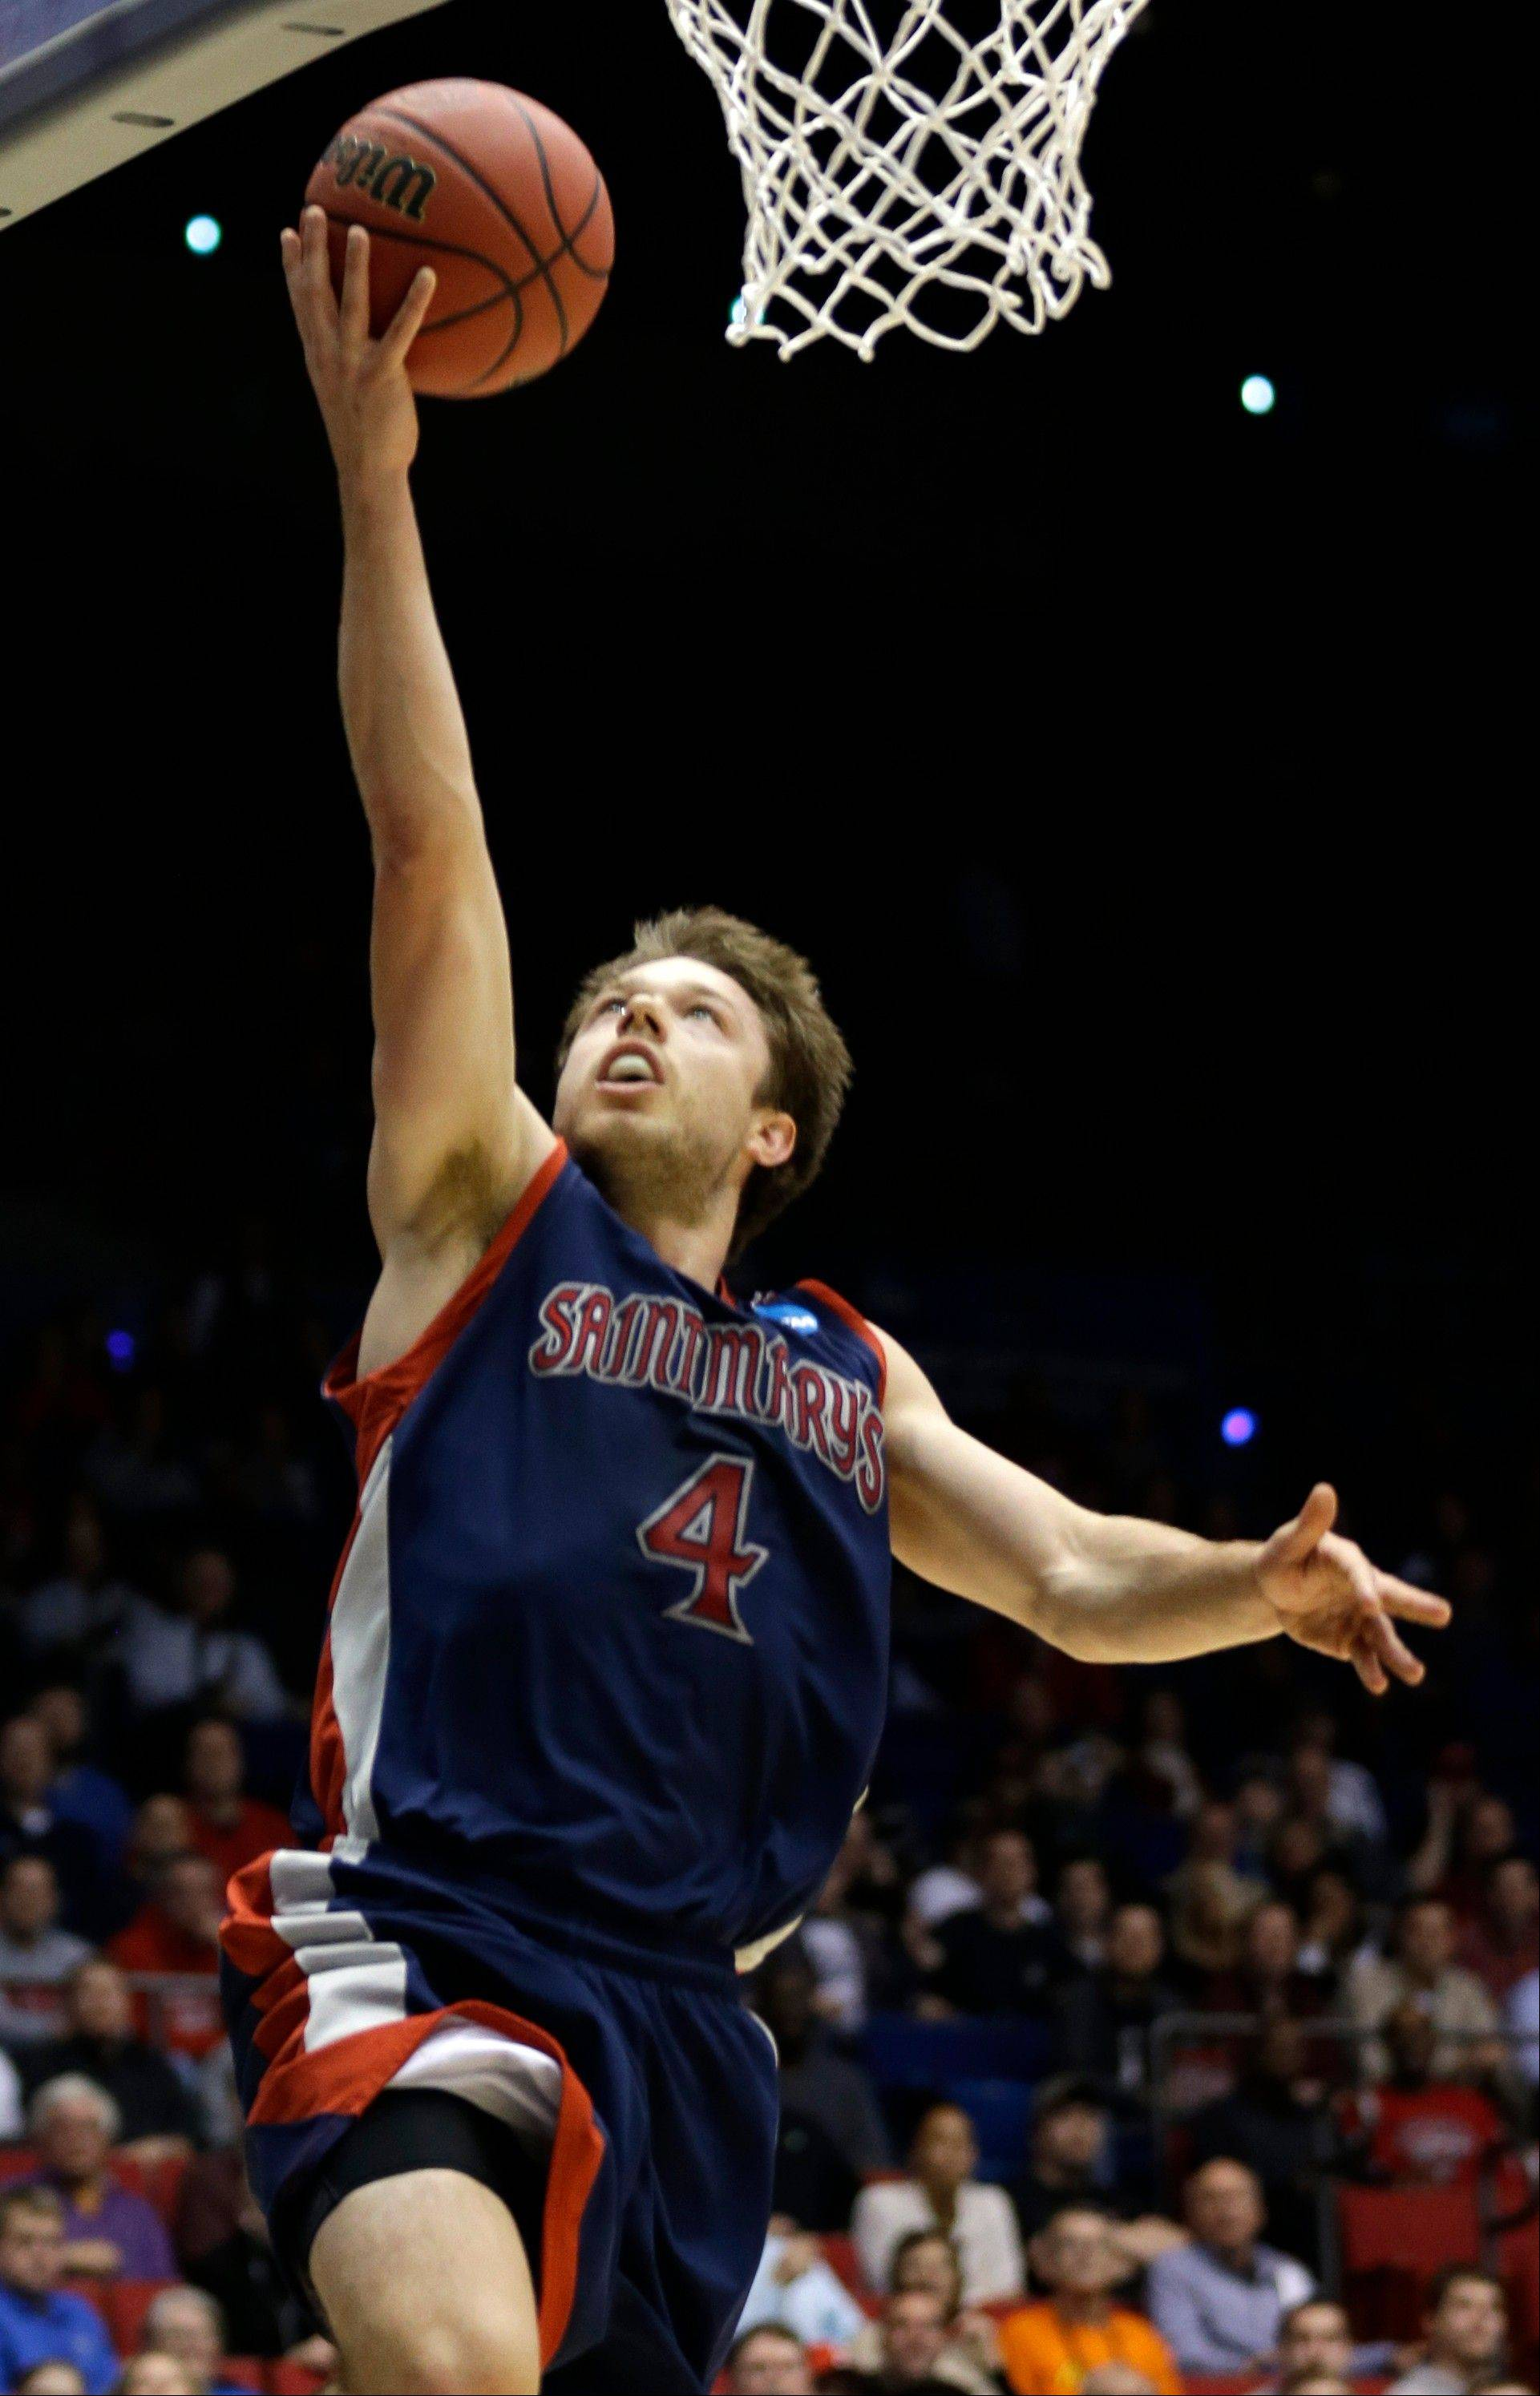 St. Mary's guard Matthew Dellavedova scores against Middle Tennessee in the first half of a first-round game of the NCAA men's college basketball tournament, Tuesday, March 19, 2013, in Dayton, Ohio. (AP Photo/Al Behrman)